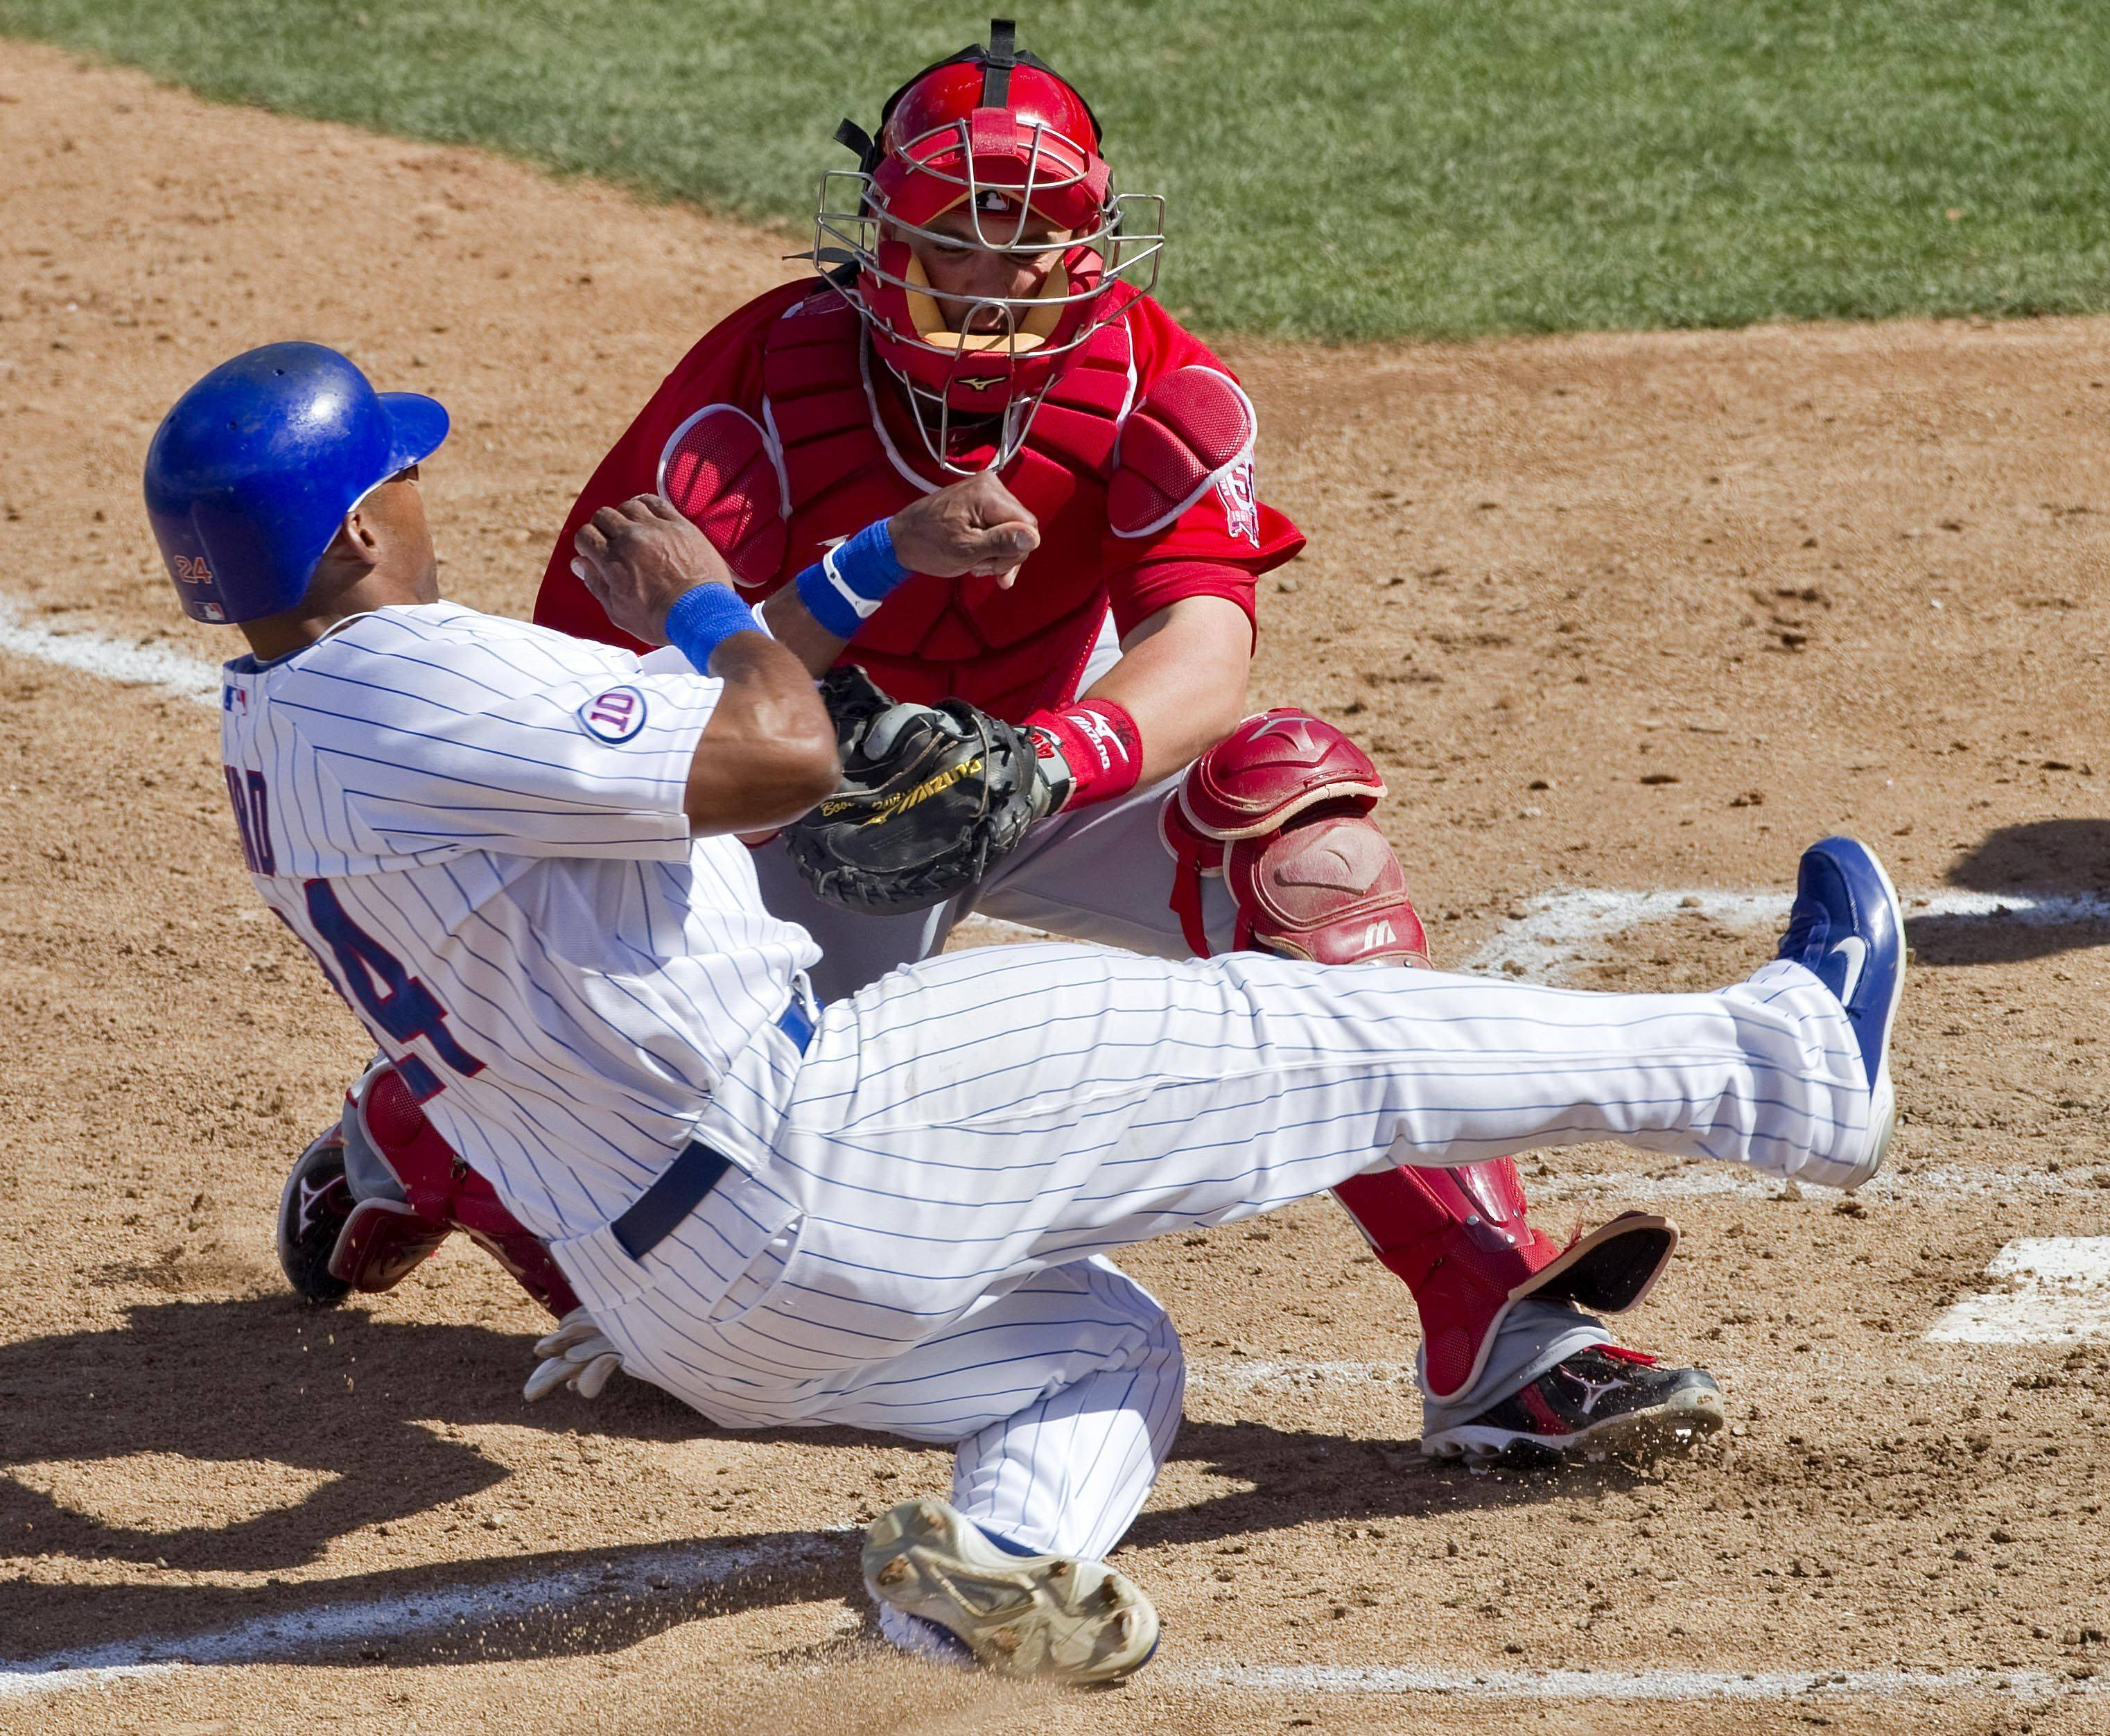 Angels catcher Bobby Wilson tags out Marlon Byrd of the Cubs during their spring training game at HoHo Kam Park on Monday in Mesa, Ariz. Byrd has two years remaining on a three-year deal he signed last season.